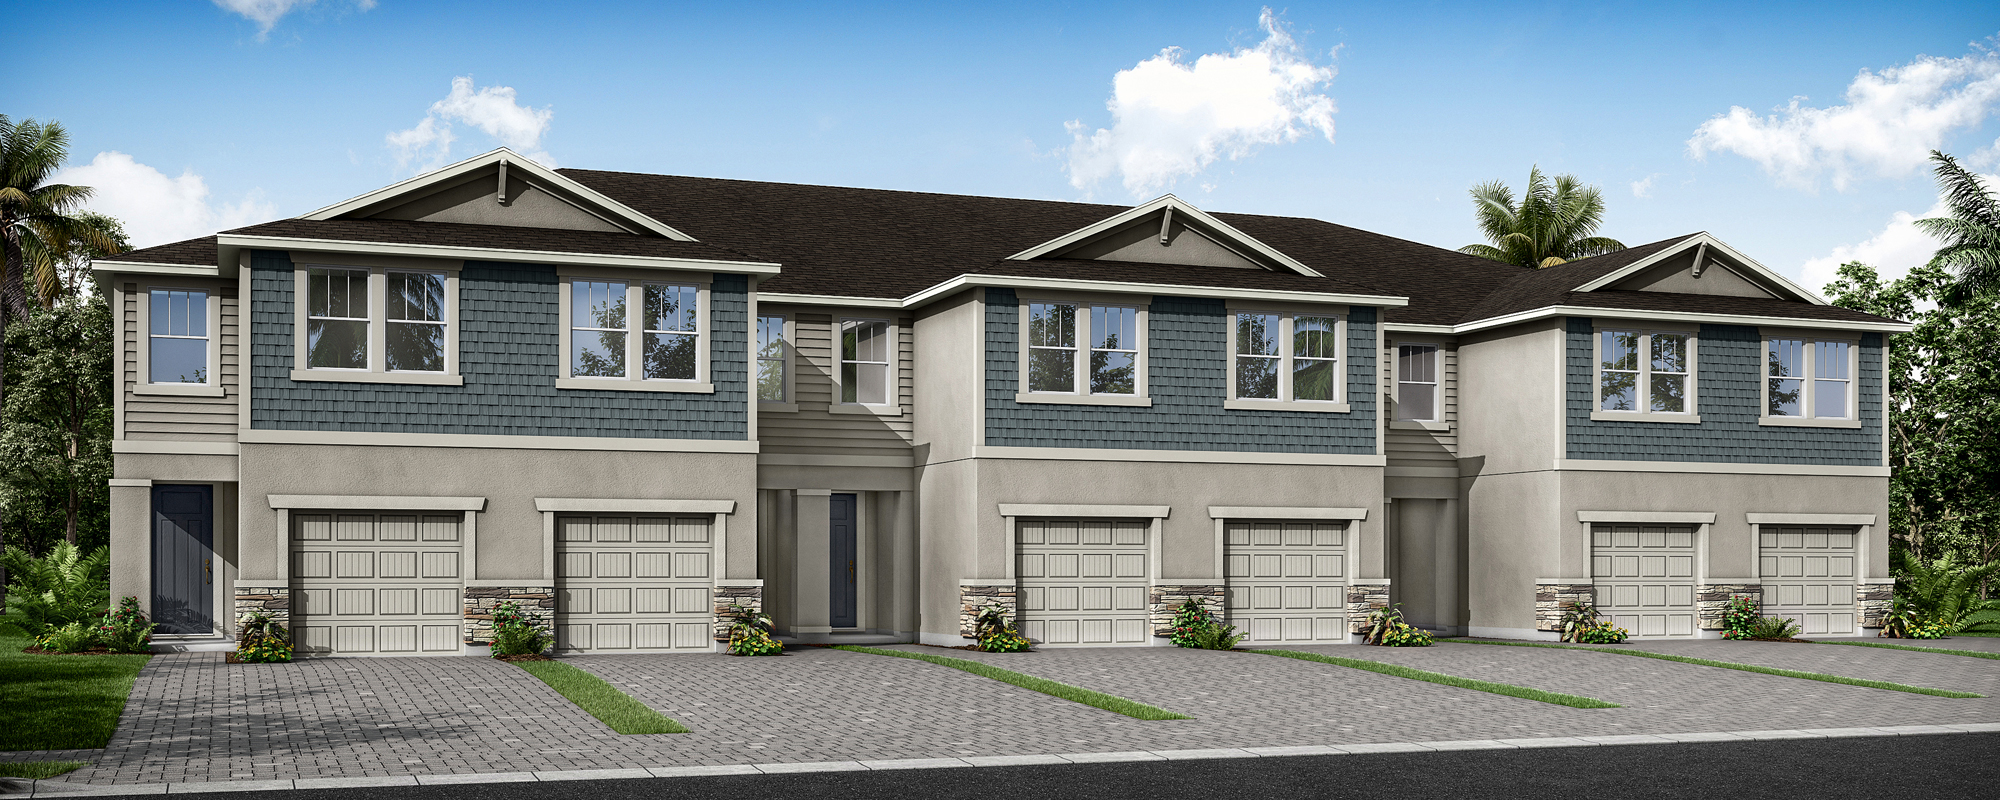 Marianna Plan TownHomes at Volanti in Wesley Chapel Florida by Mattamy Homes